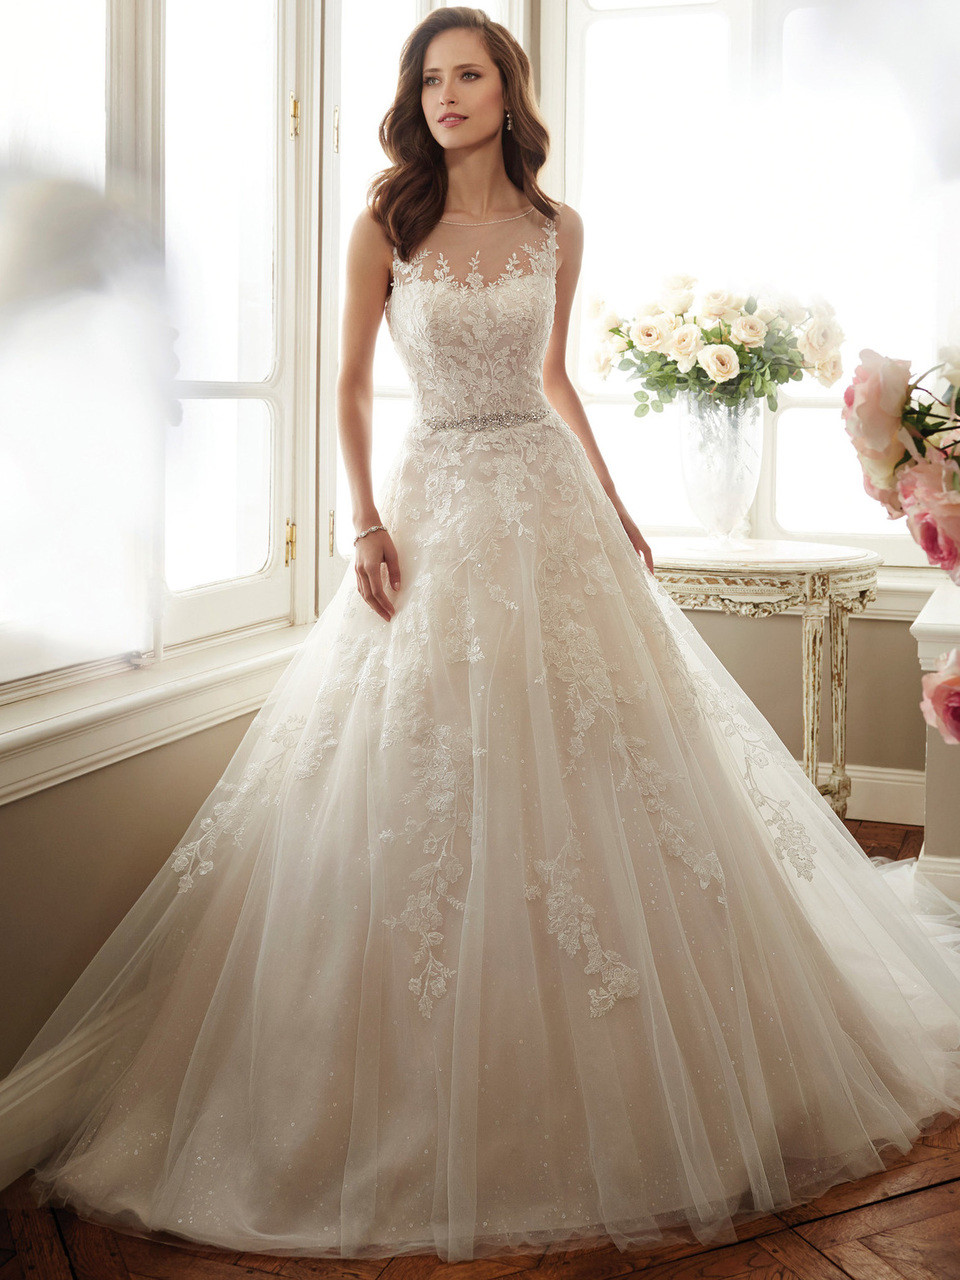 b1f71eca780 Sophia Tolli Y11719 Illusion Bateau Neckline Monte Bridal Dress ...